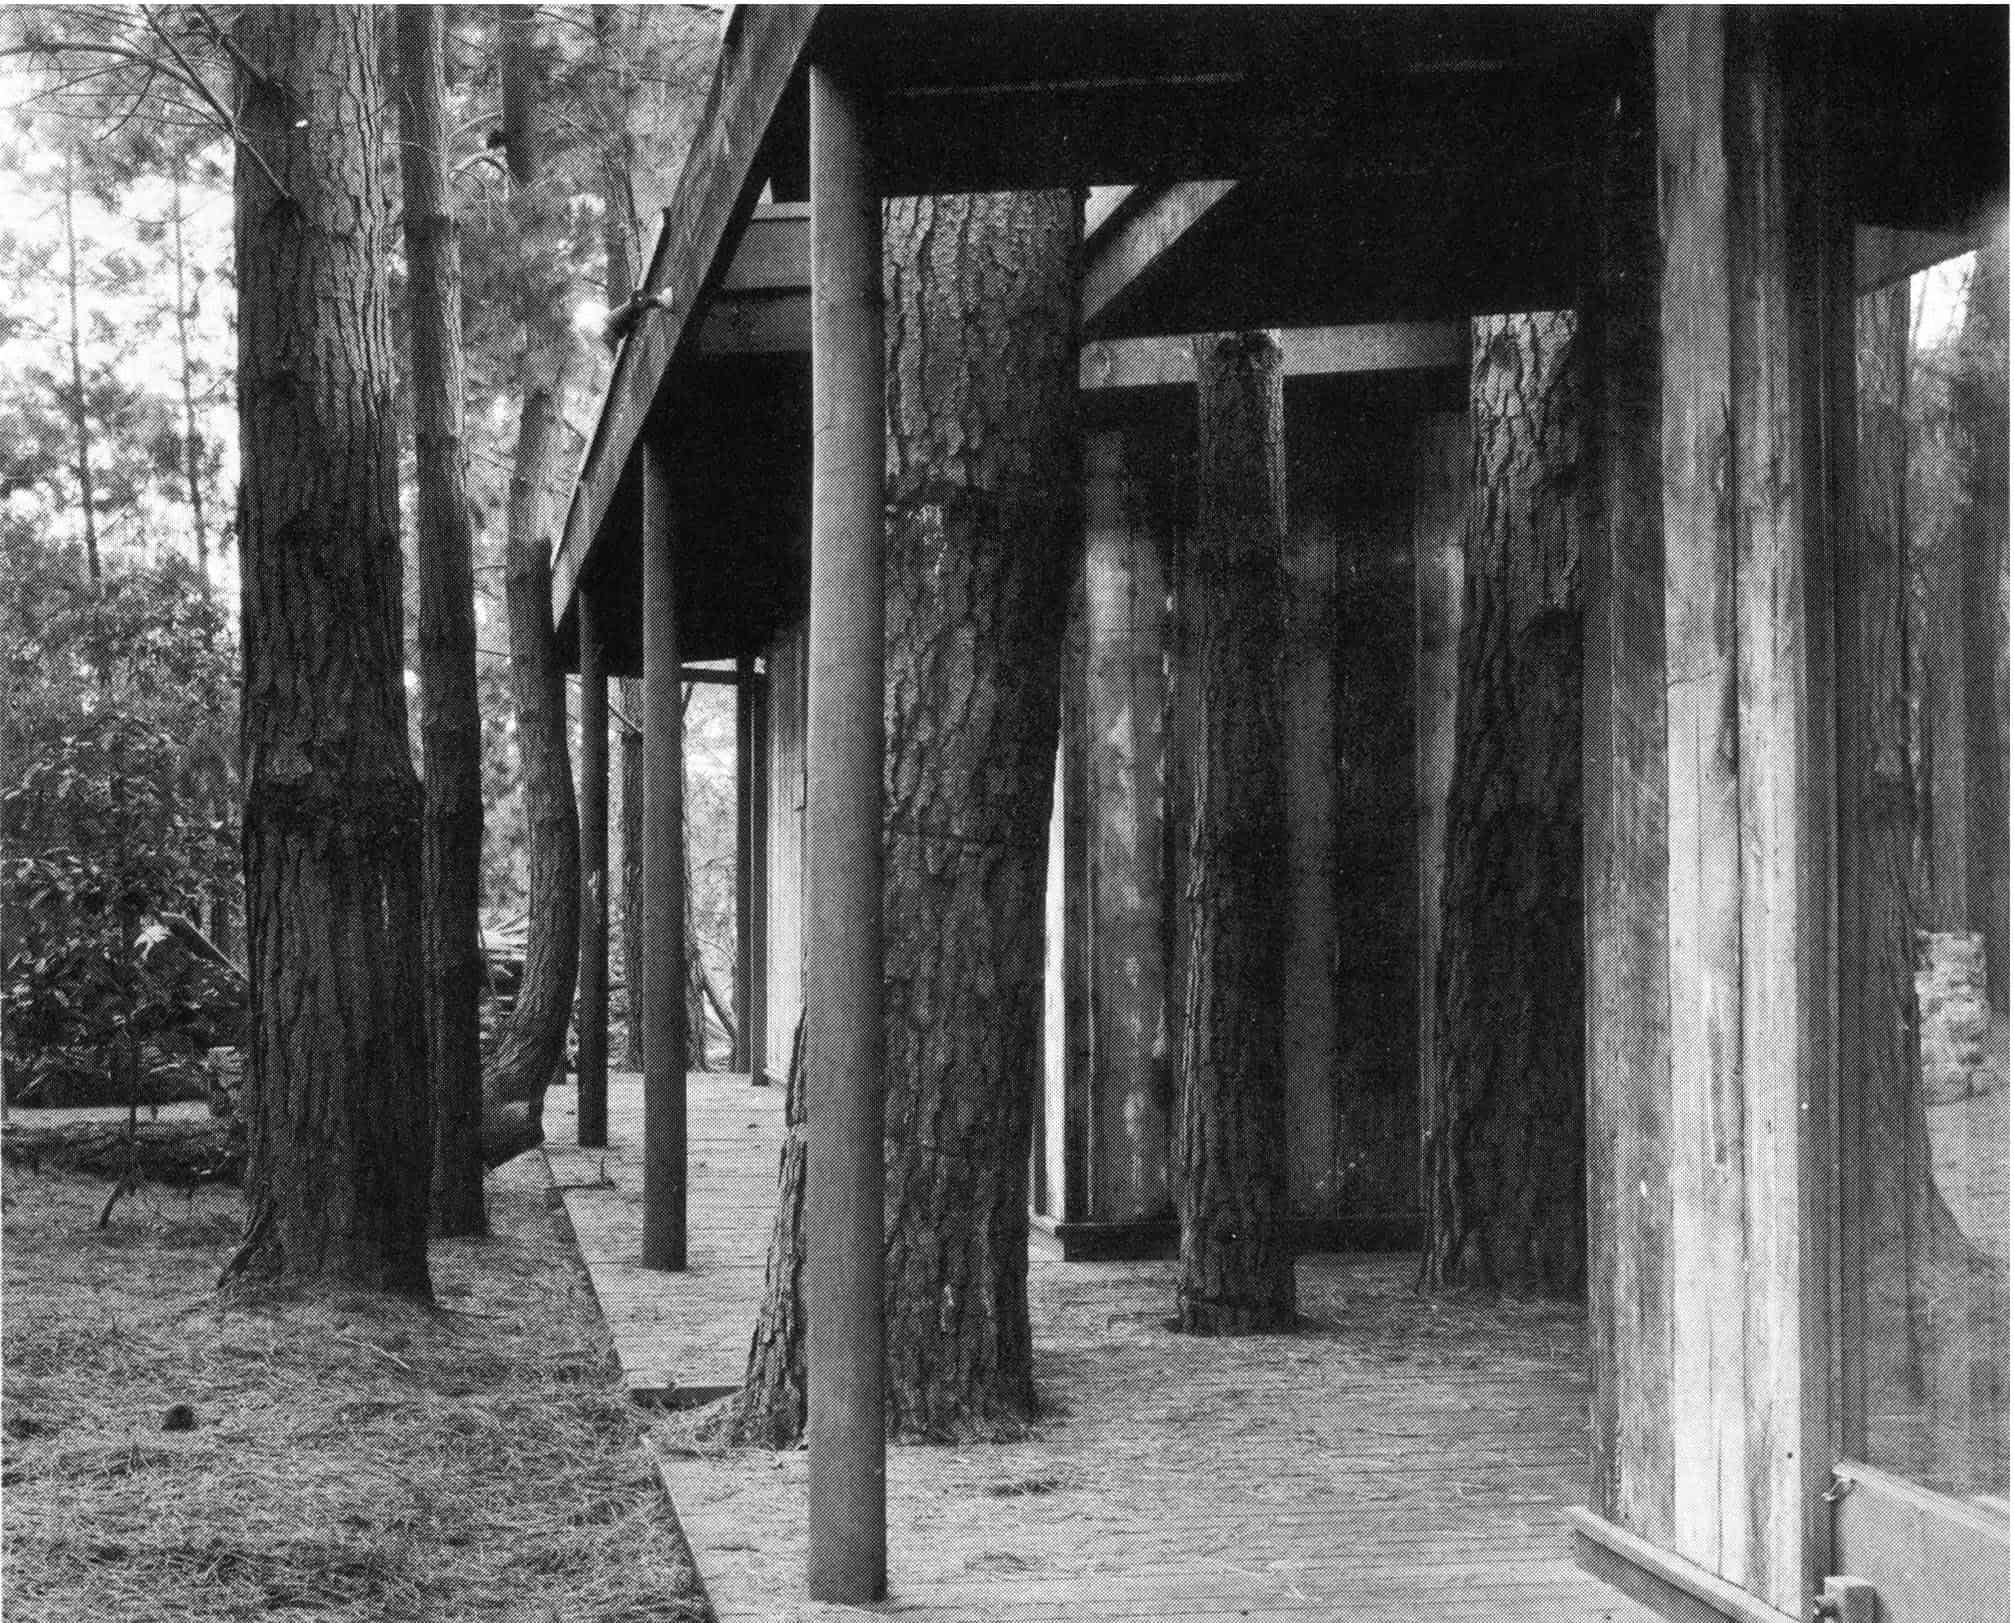 Marks House, Mt. Martha, built to accommodate existing trees Source: Knox